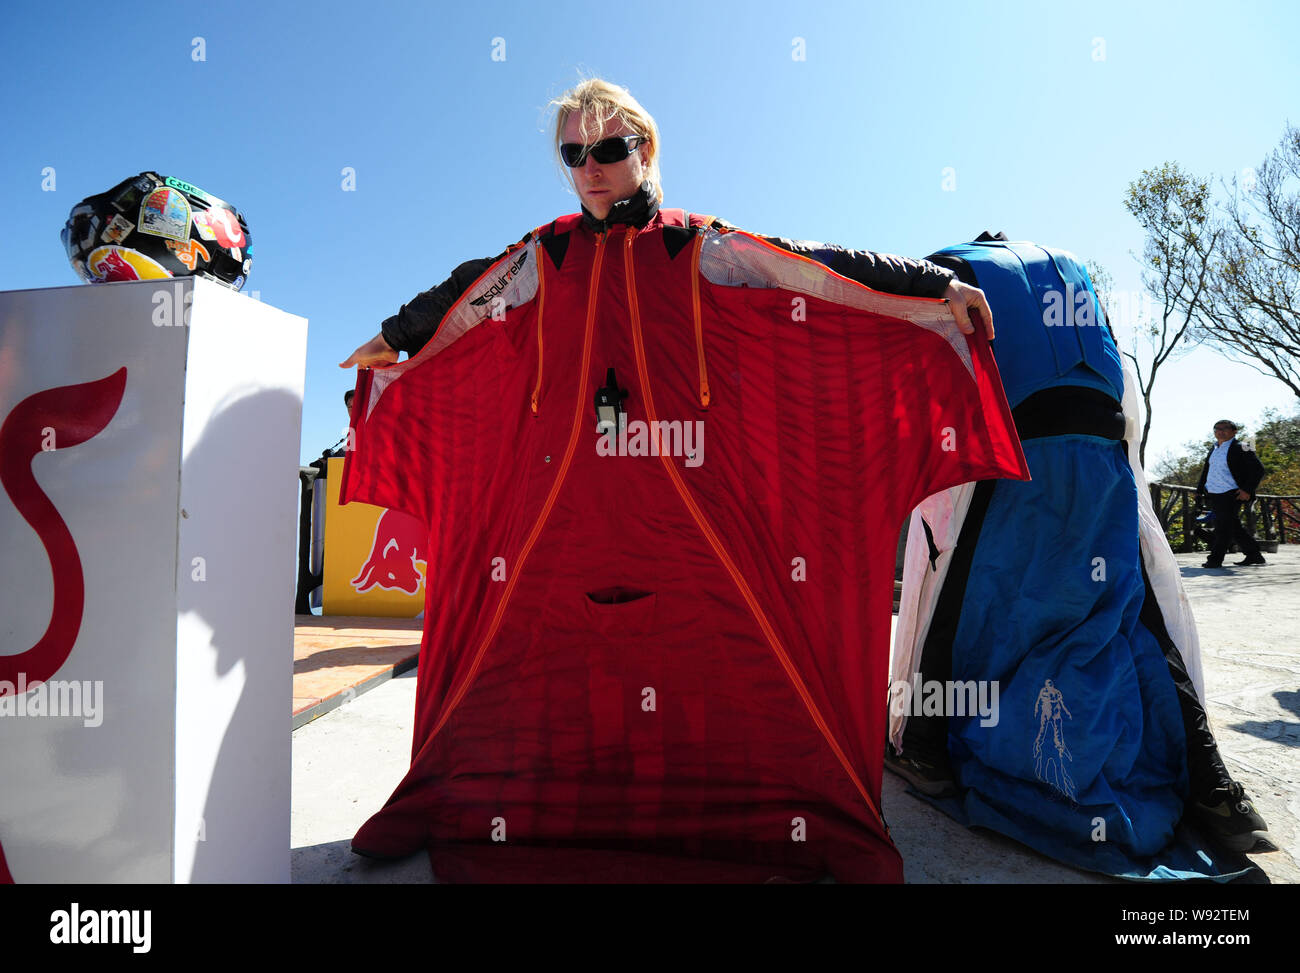 Competitors Prepare To Jump Off The Cliff During A Training Of The Second Wingsuit Flying World Championship On Tianmen Mountain In Zhangjiajie Centr Stock Photo 263750556 Alamy